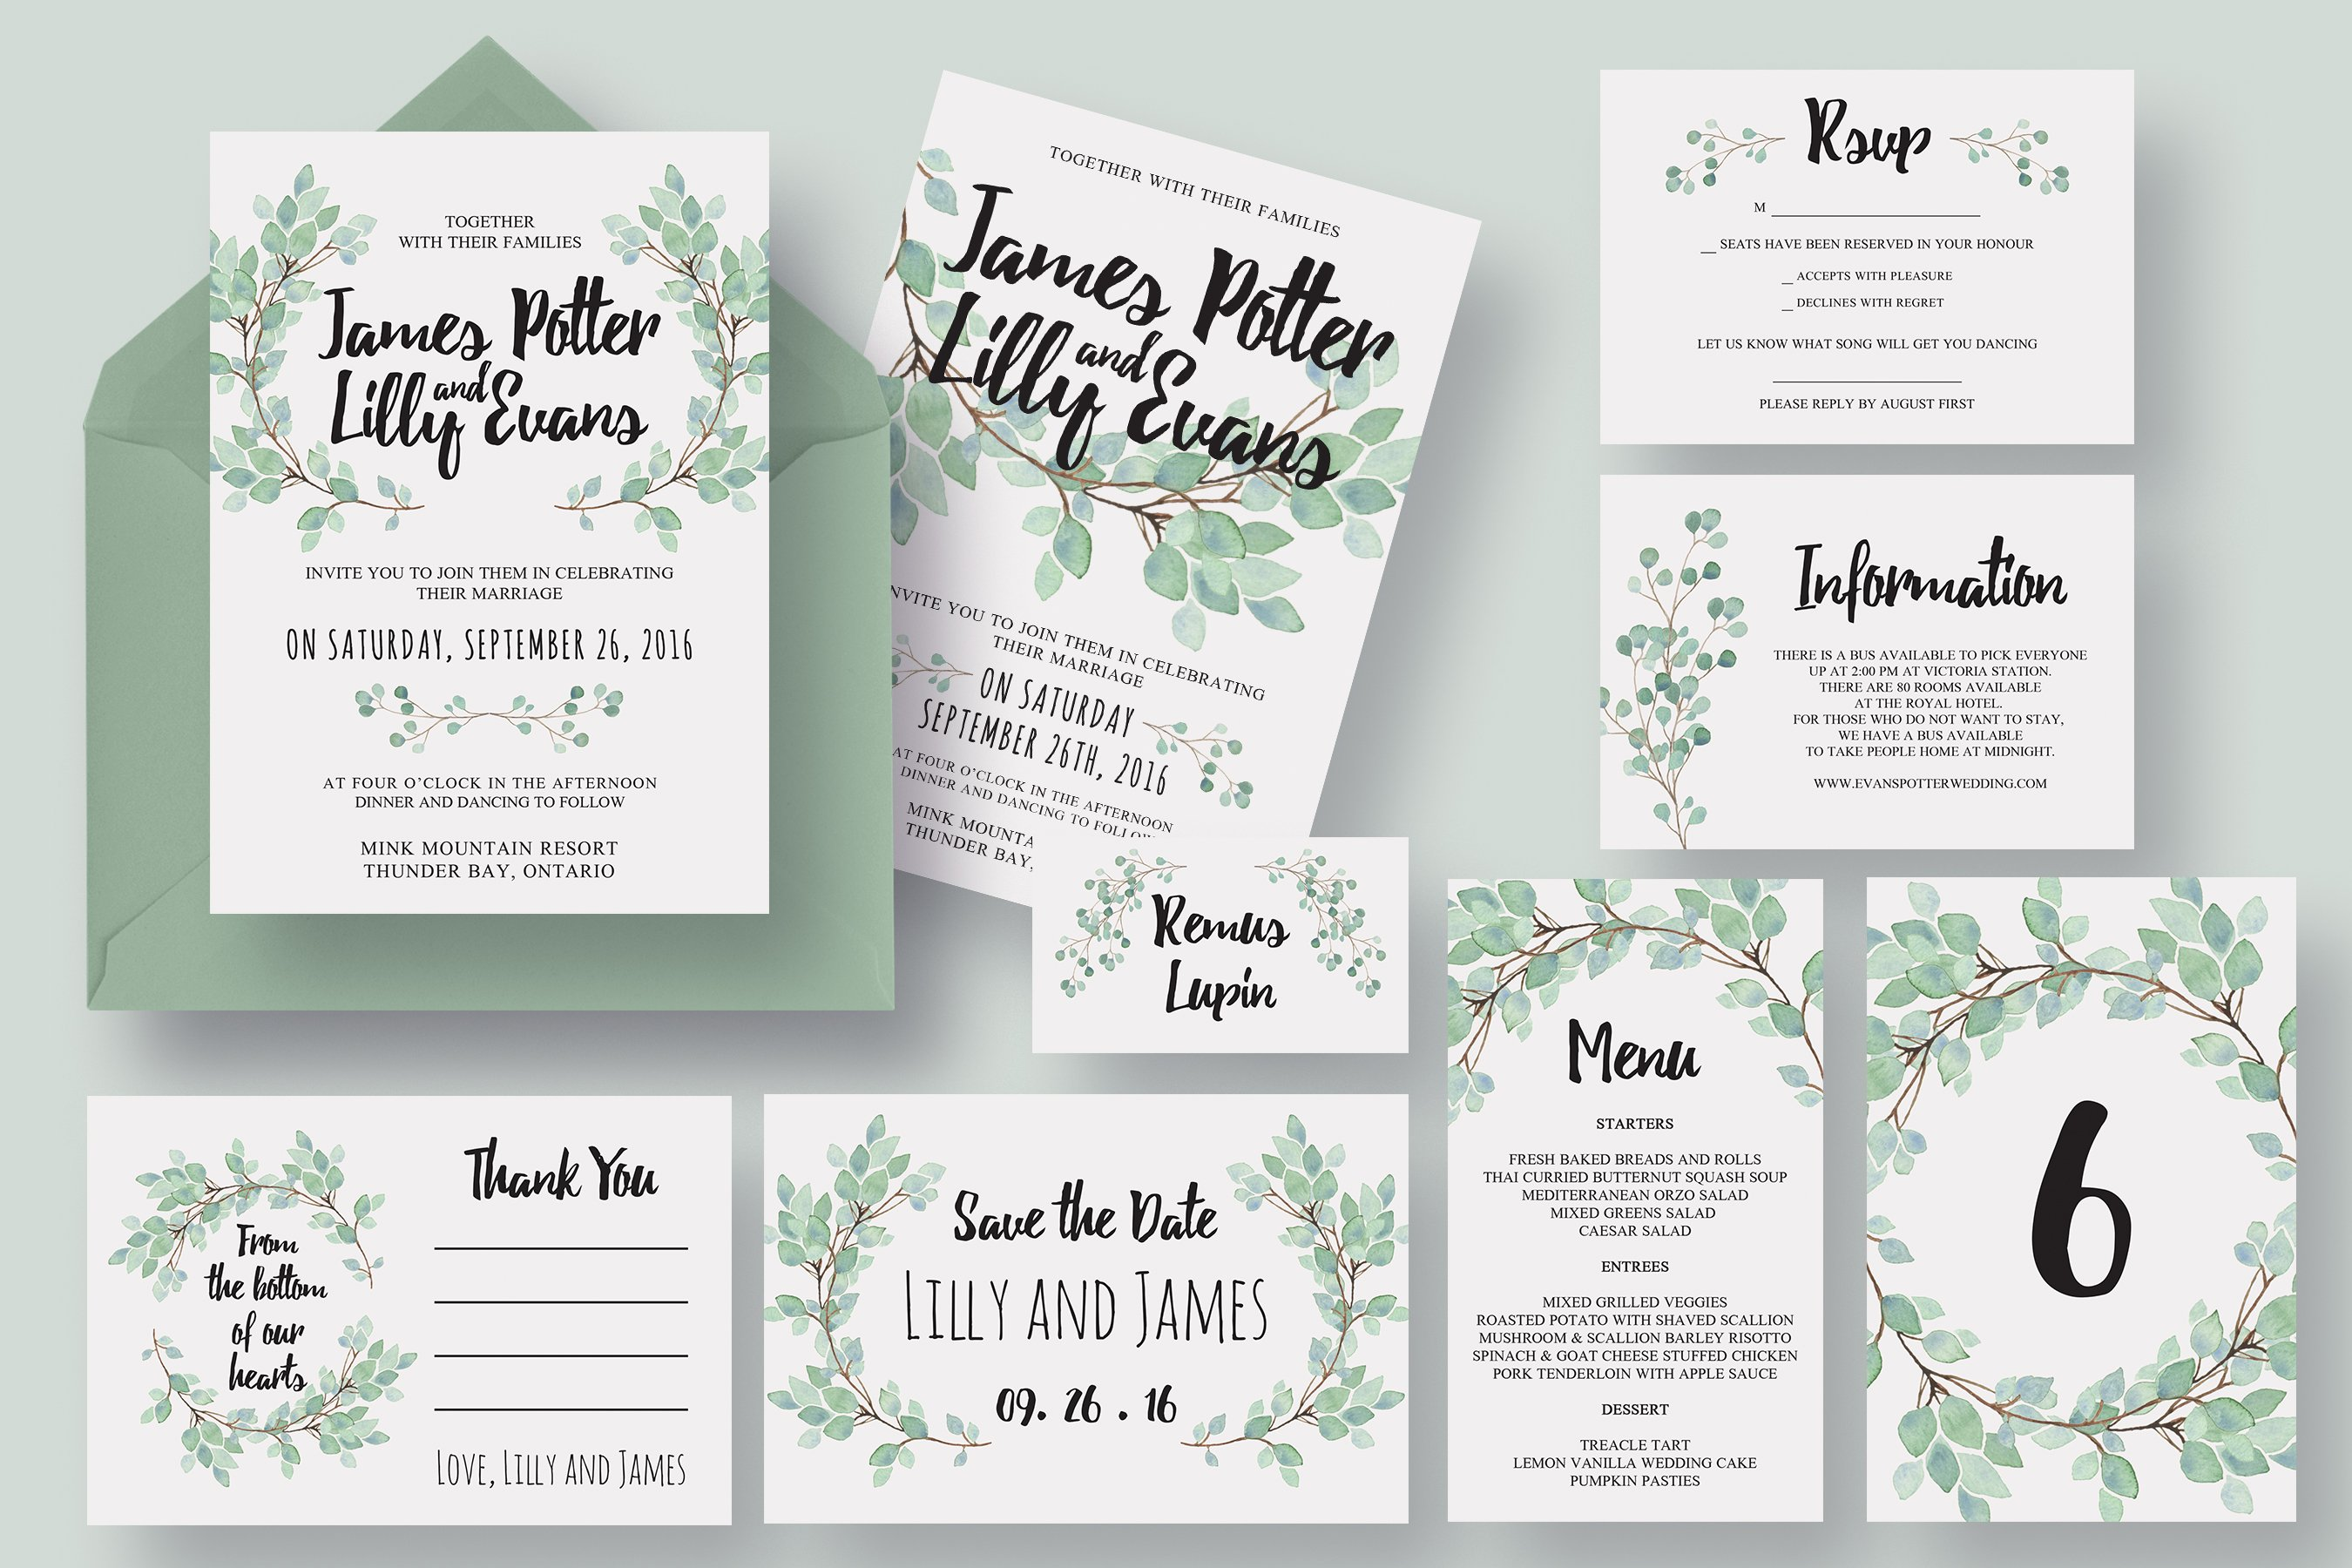 Eucalyptus Wedding Invitation Suite Invitation Templates - Make your own wedding invitations free templates